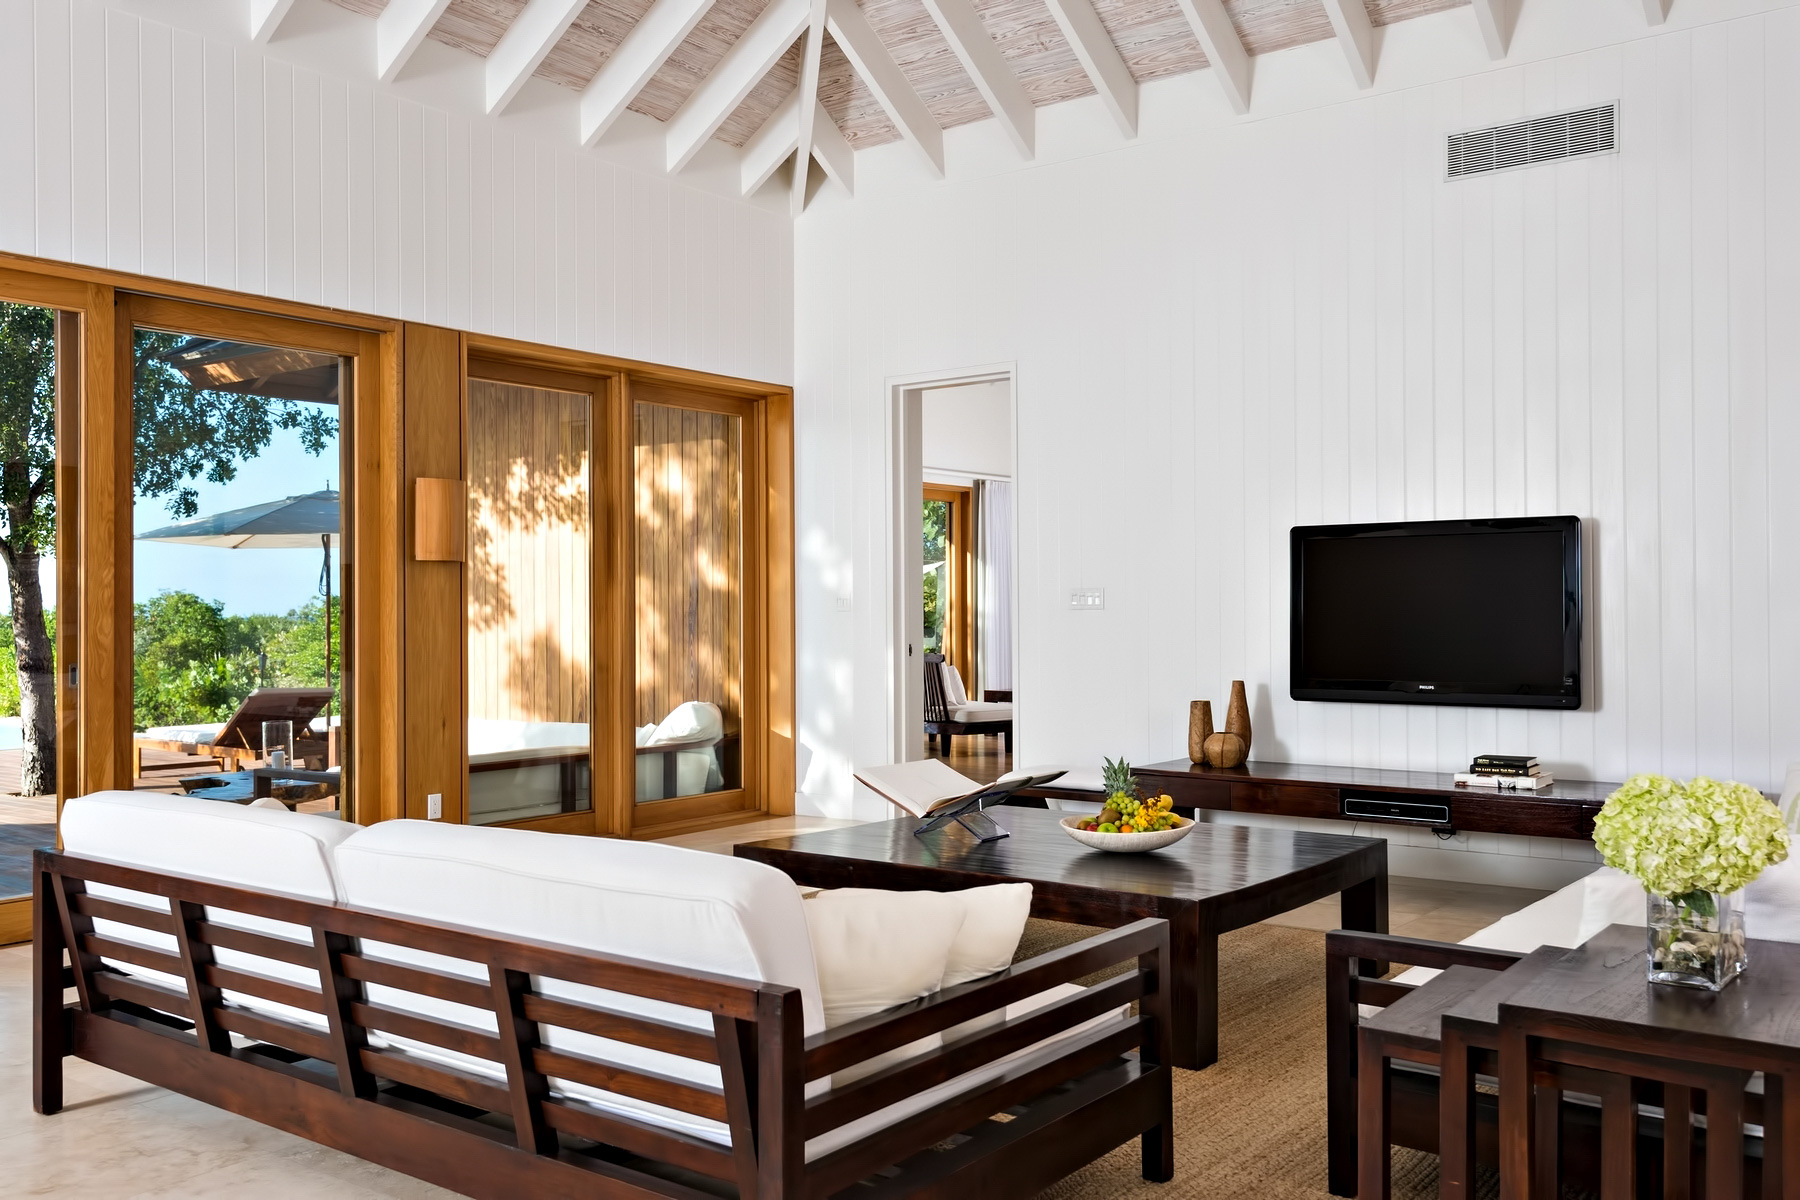 Luxury Island Villa 1101 – Parrot Cay, Turks and Caicos Islands